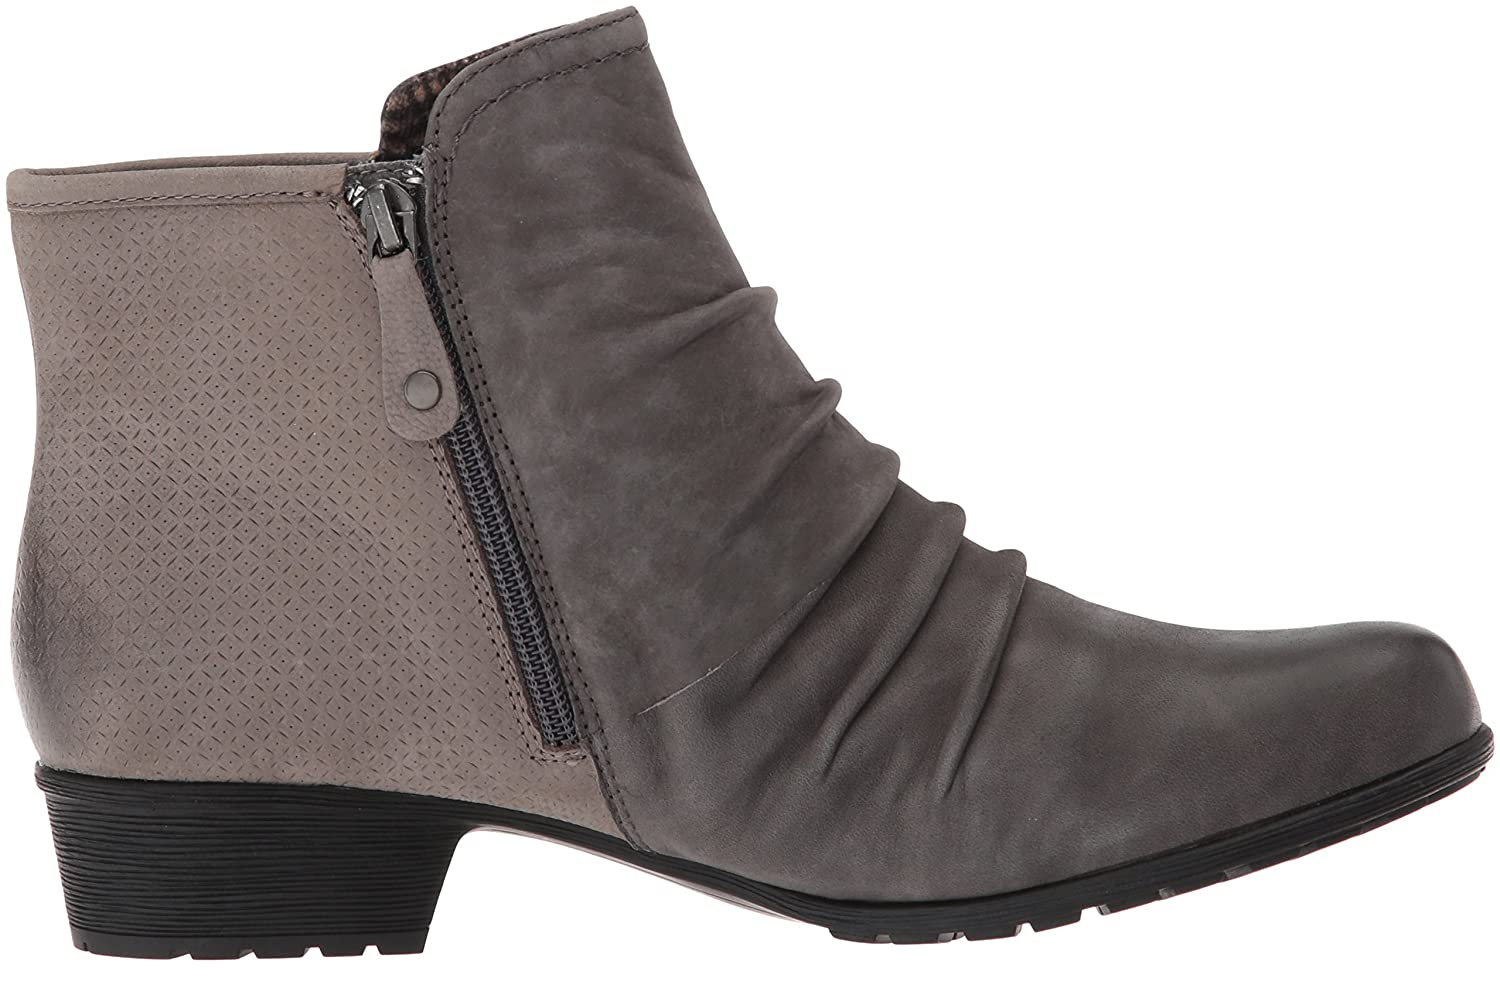 Cobb Hill Women's Gratasha Panel Ankle Boot B01MV6RW7W Nubuck 9.5 B(M) US|Dark Grey Nubuck B01MV6RW7W 68b02d